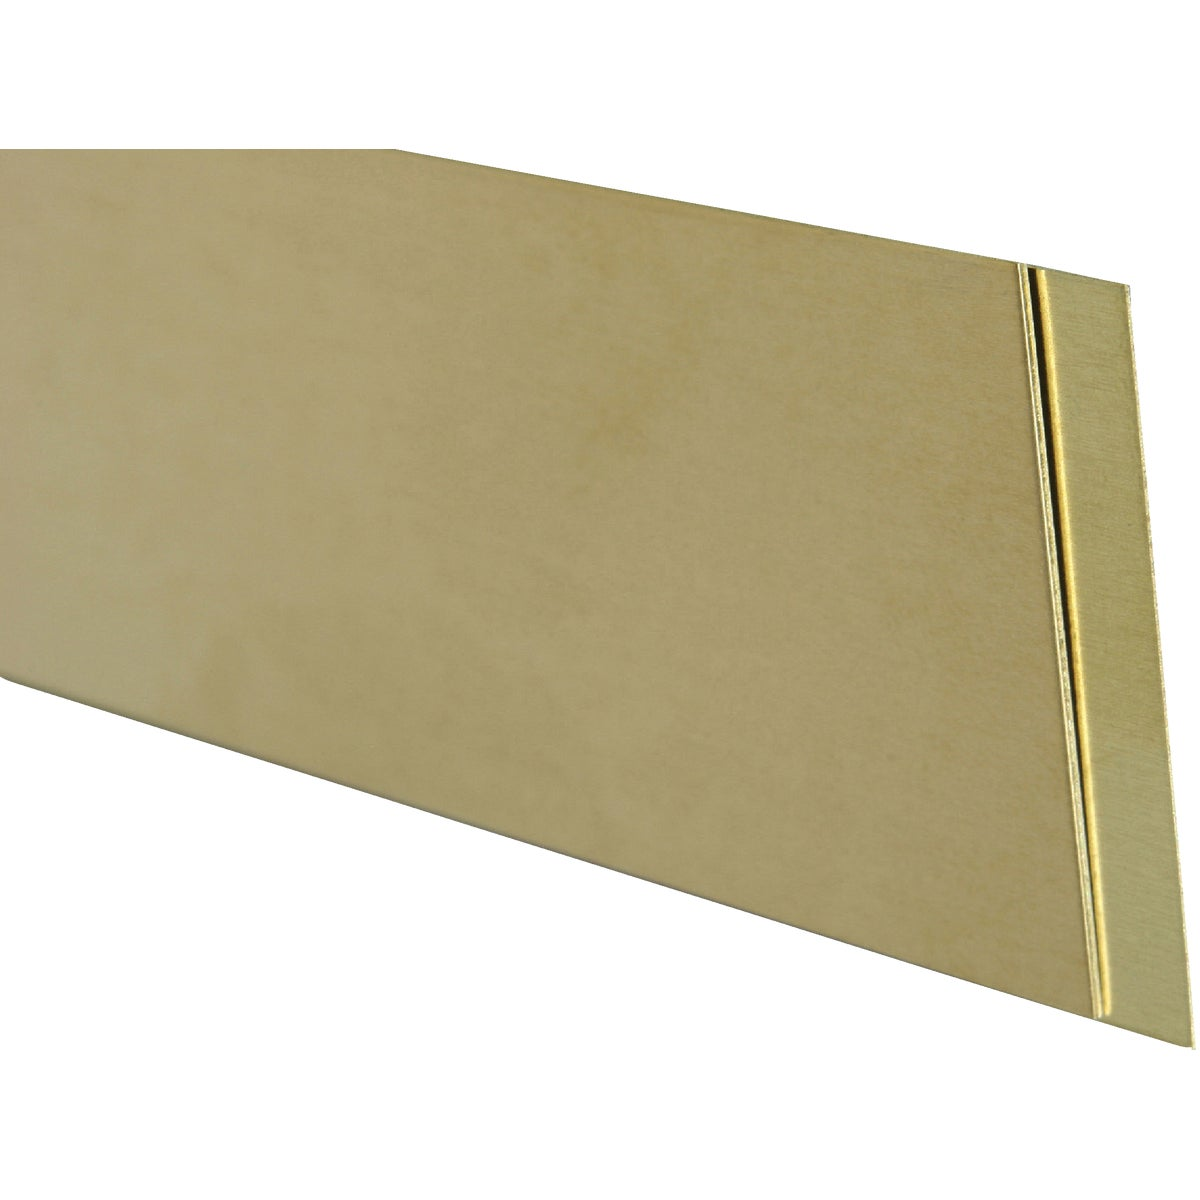 .093X1/2X12 BRASS STRIP - 226 by K&s Precision Metals